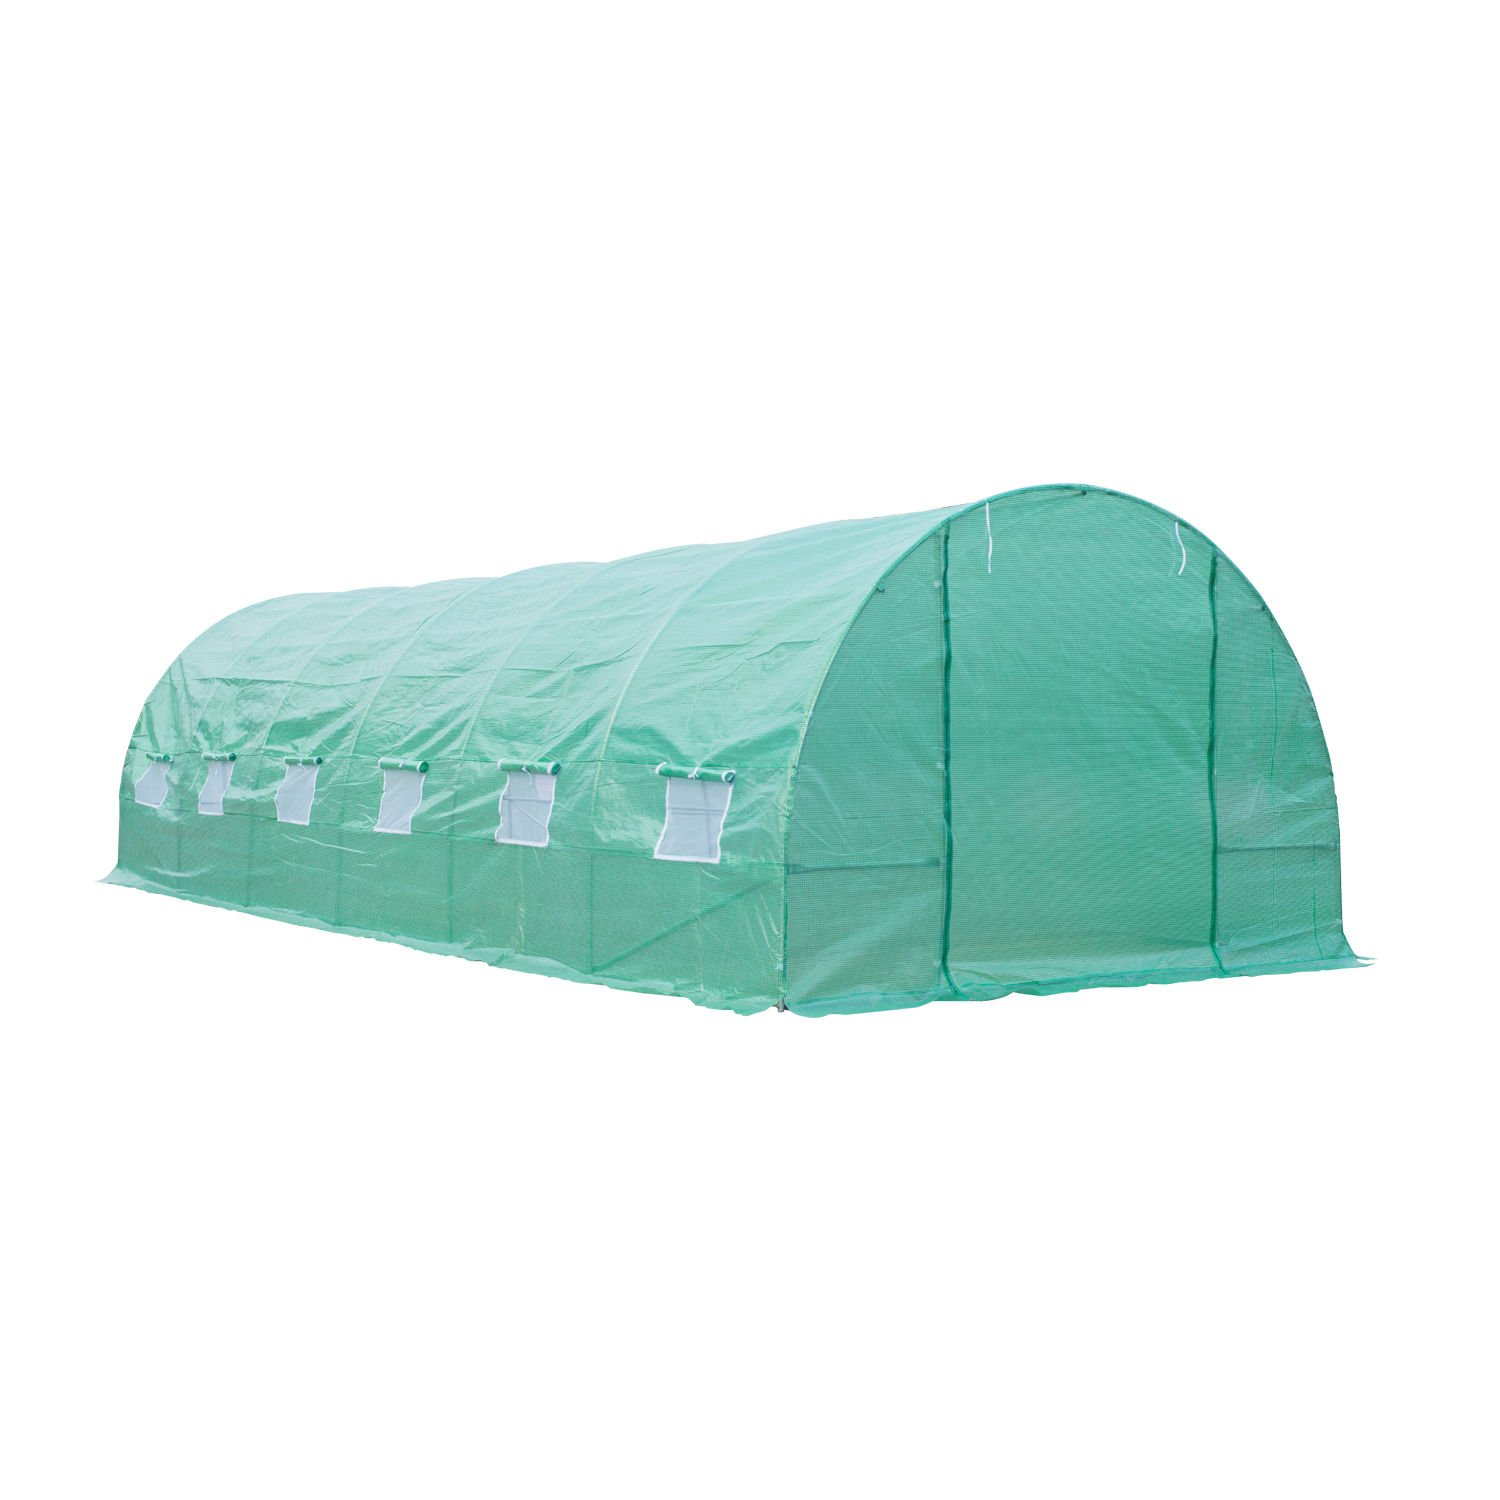 Outsunny 26' x 10' x 7' Portable Walk-in Garden Greenhouse - Deep Green by Outsunny (Image #4)